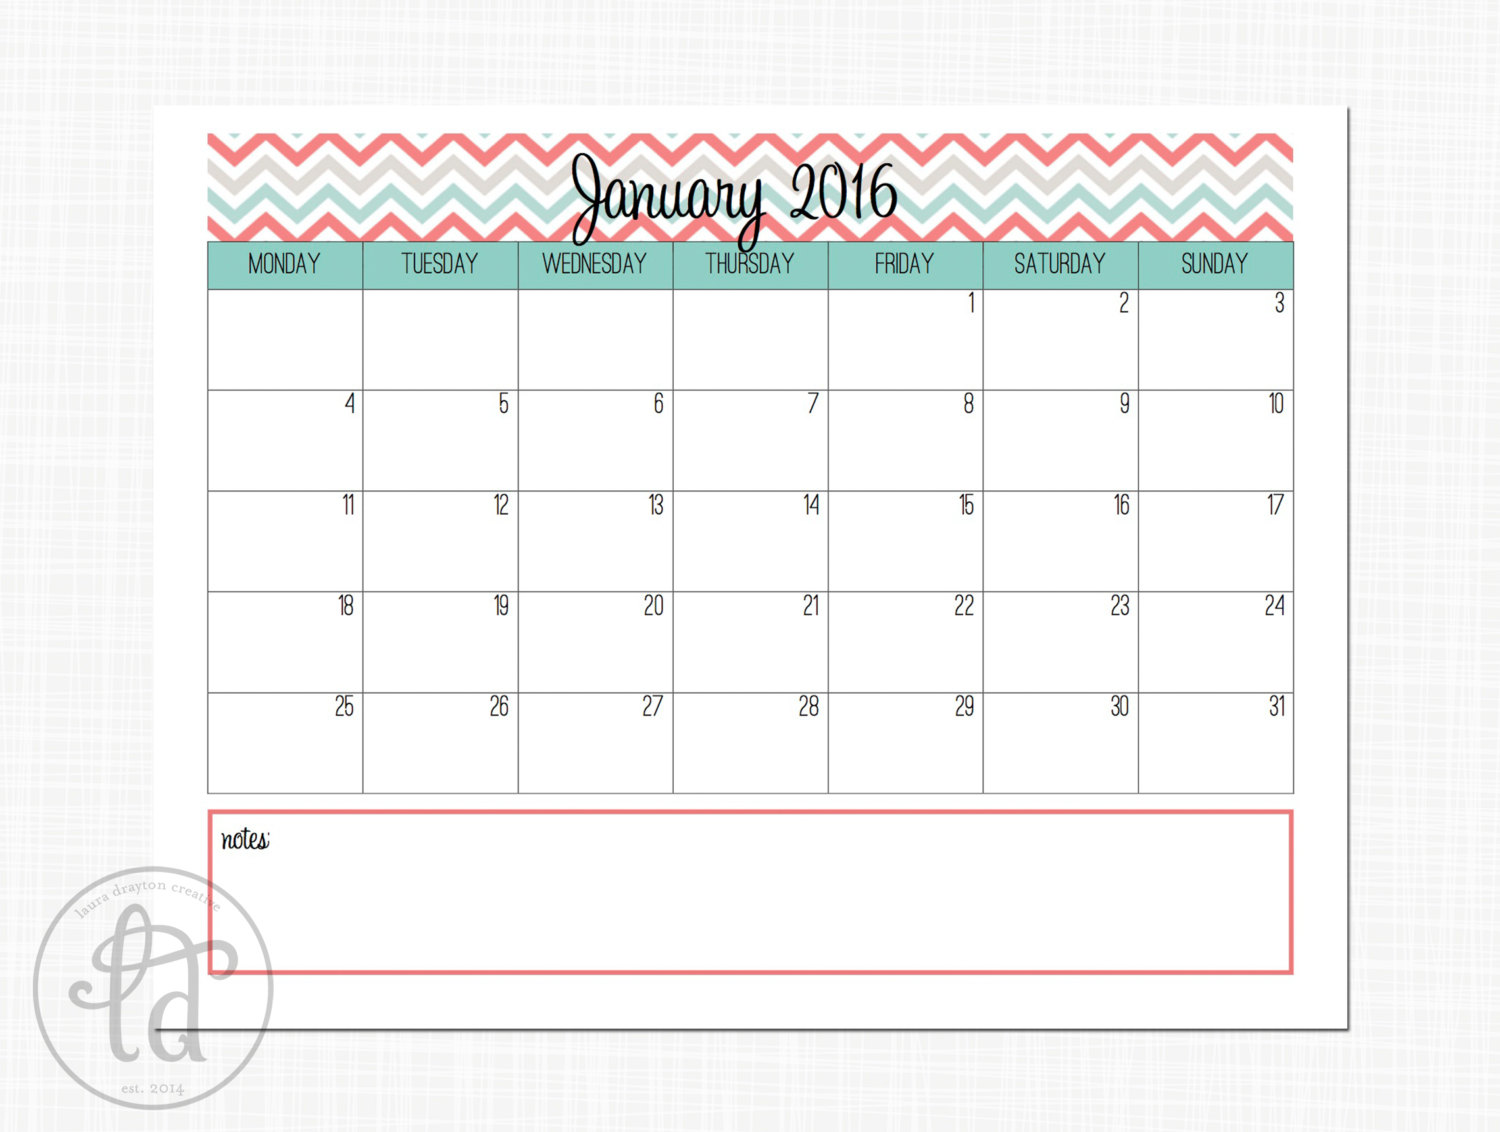 7 Images of Cute Printable January 2016 Calendar With Holidays